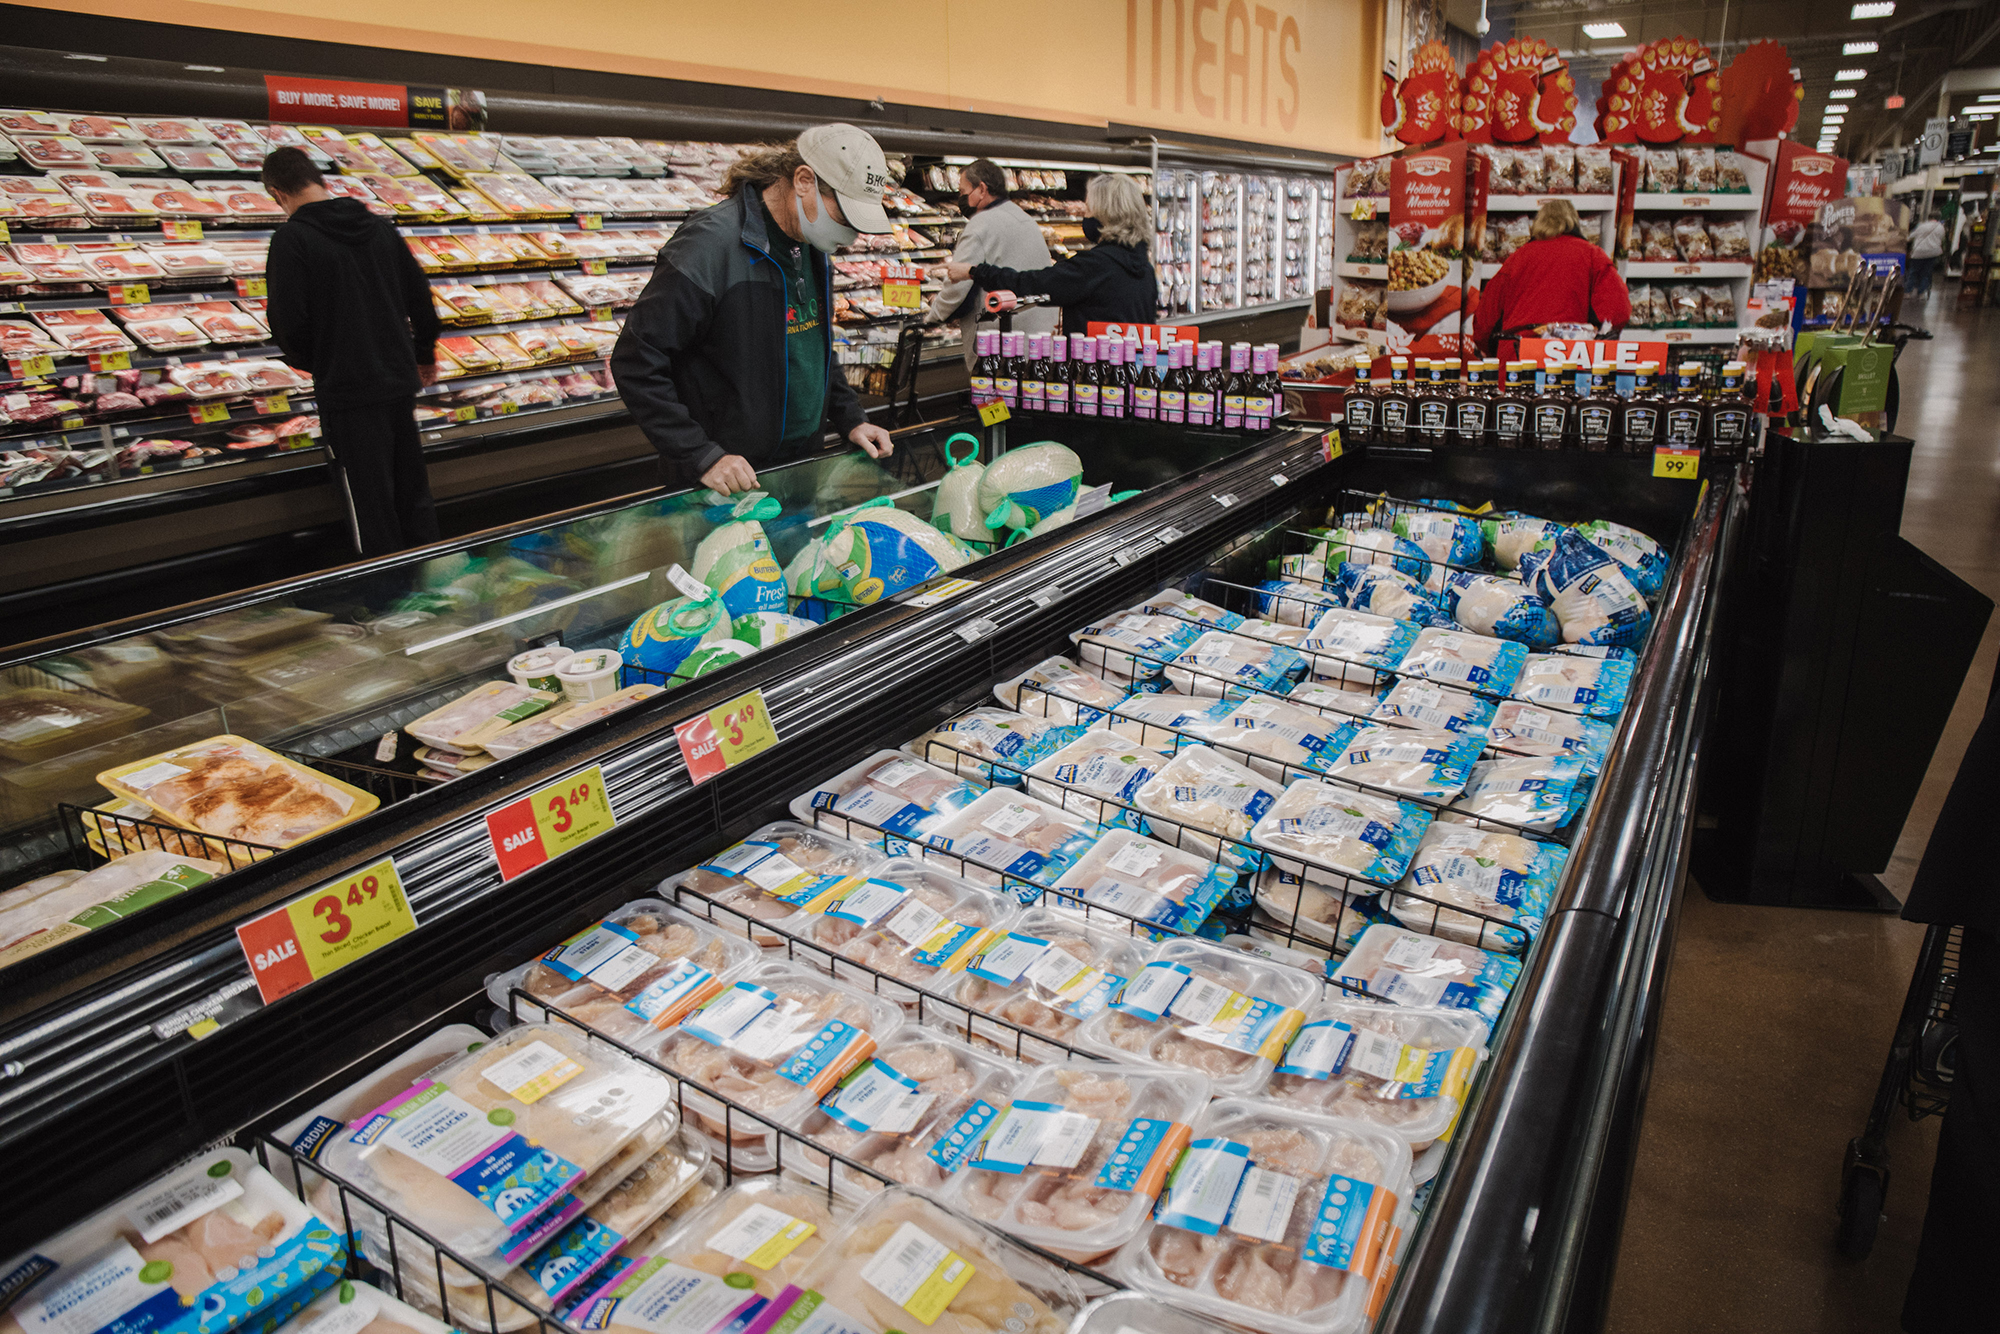 One group that won't entirely benefit from going 'back to normal': Grocery stores